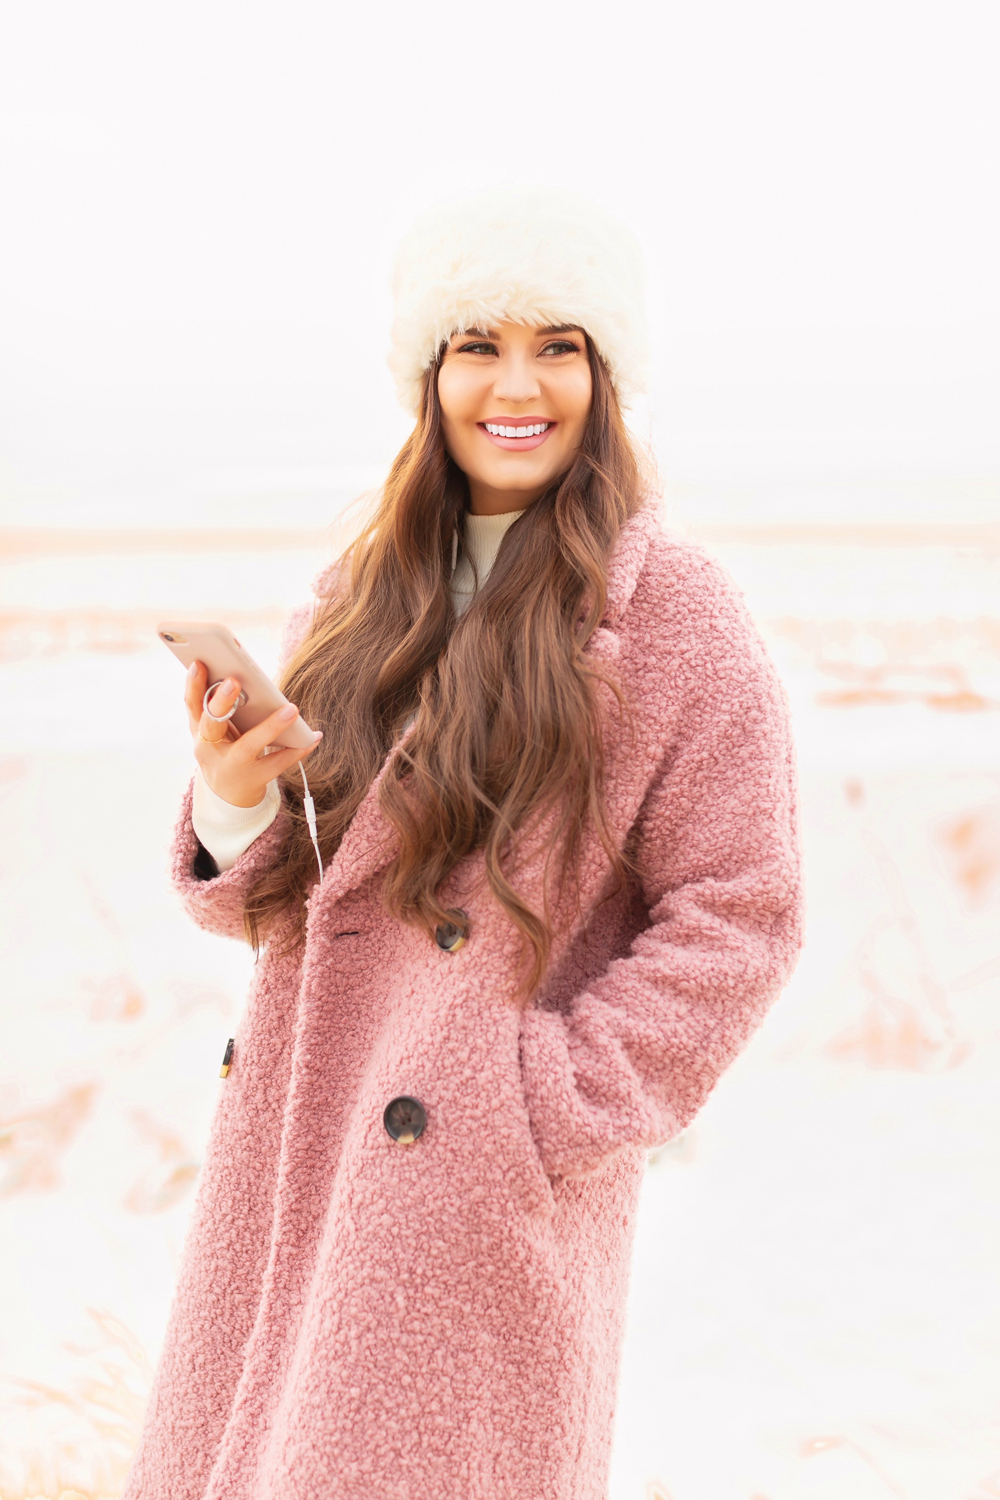 Smiling brunette woman wearing a pink teddy coat listening to an audiobook on a winter walk | Calgary Lifestyle Blogger // JustineCelina.com